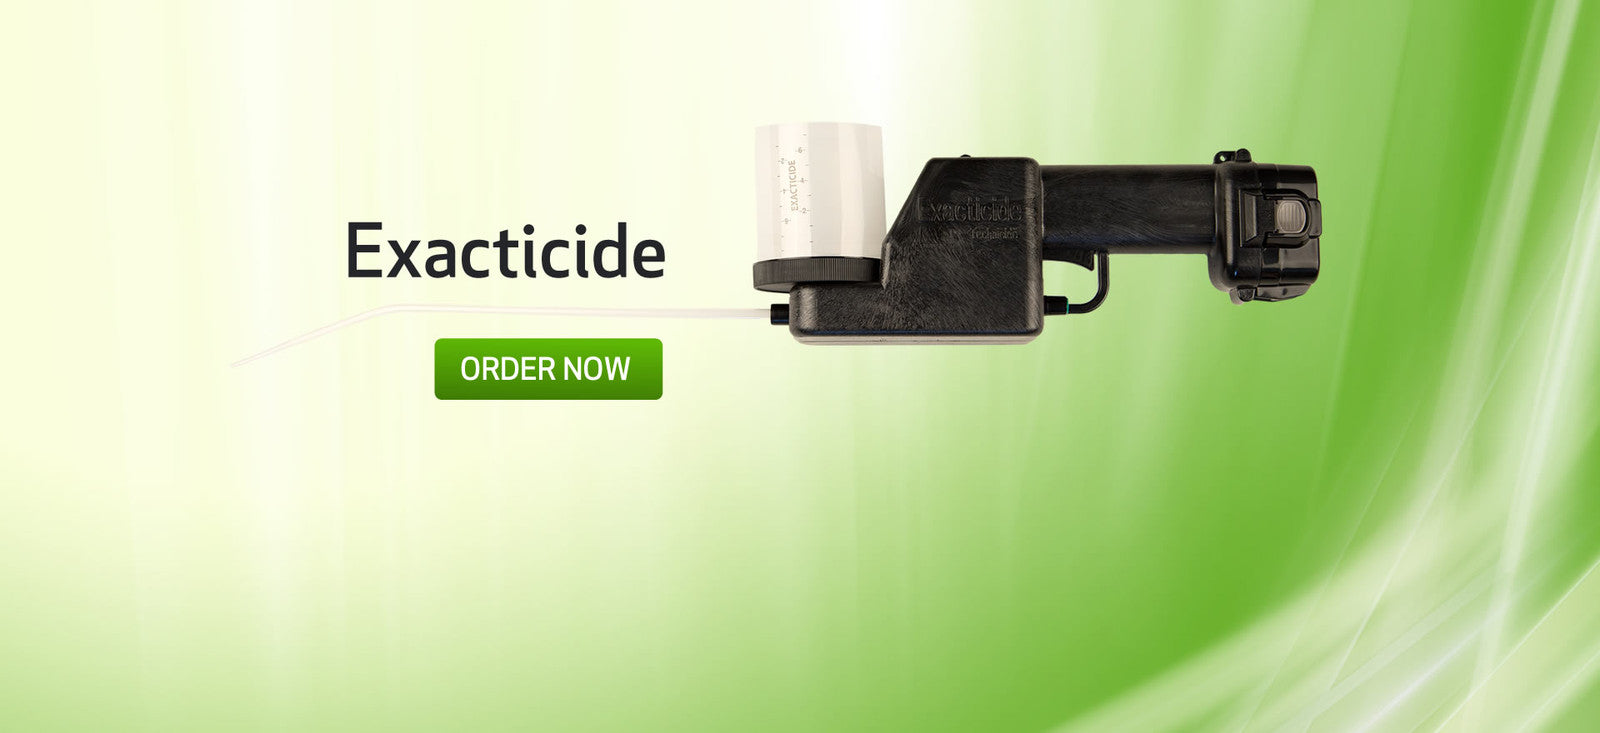 exacticide battery powered dust applicator pest control equipment